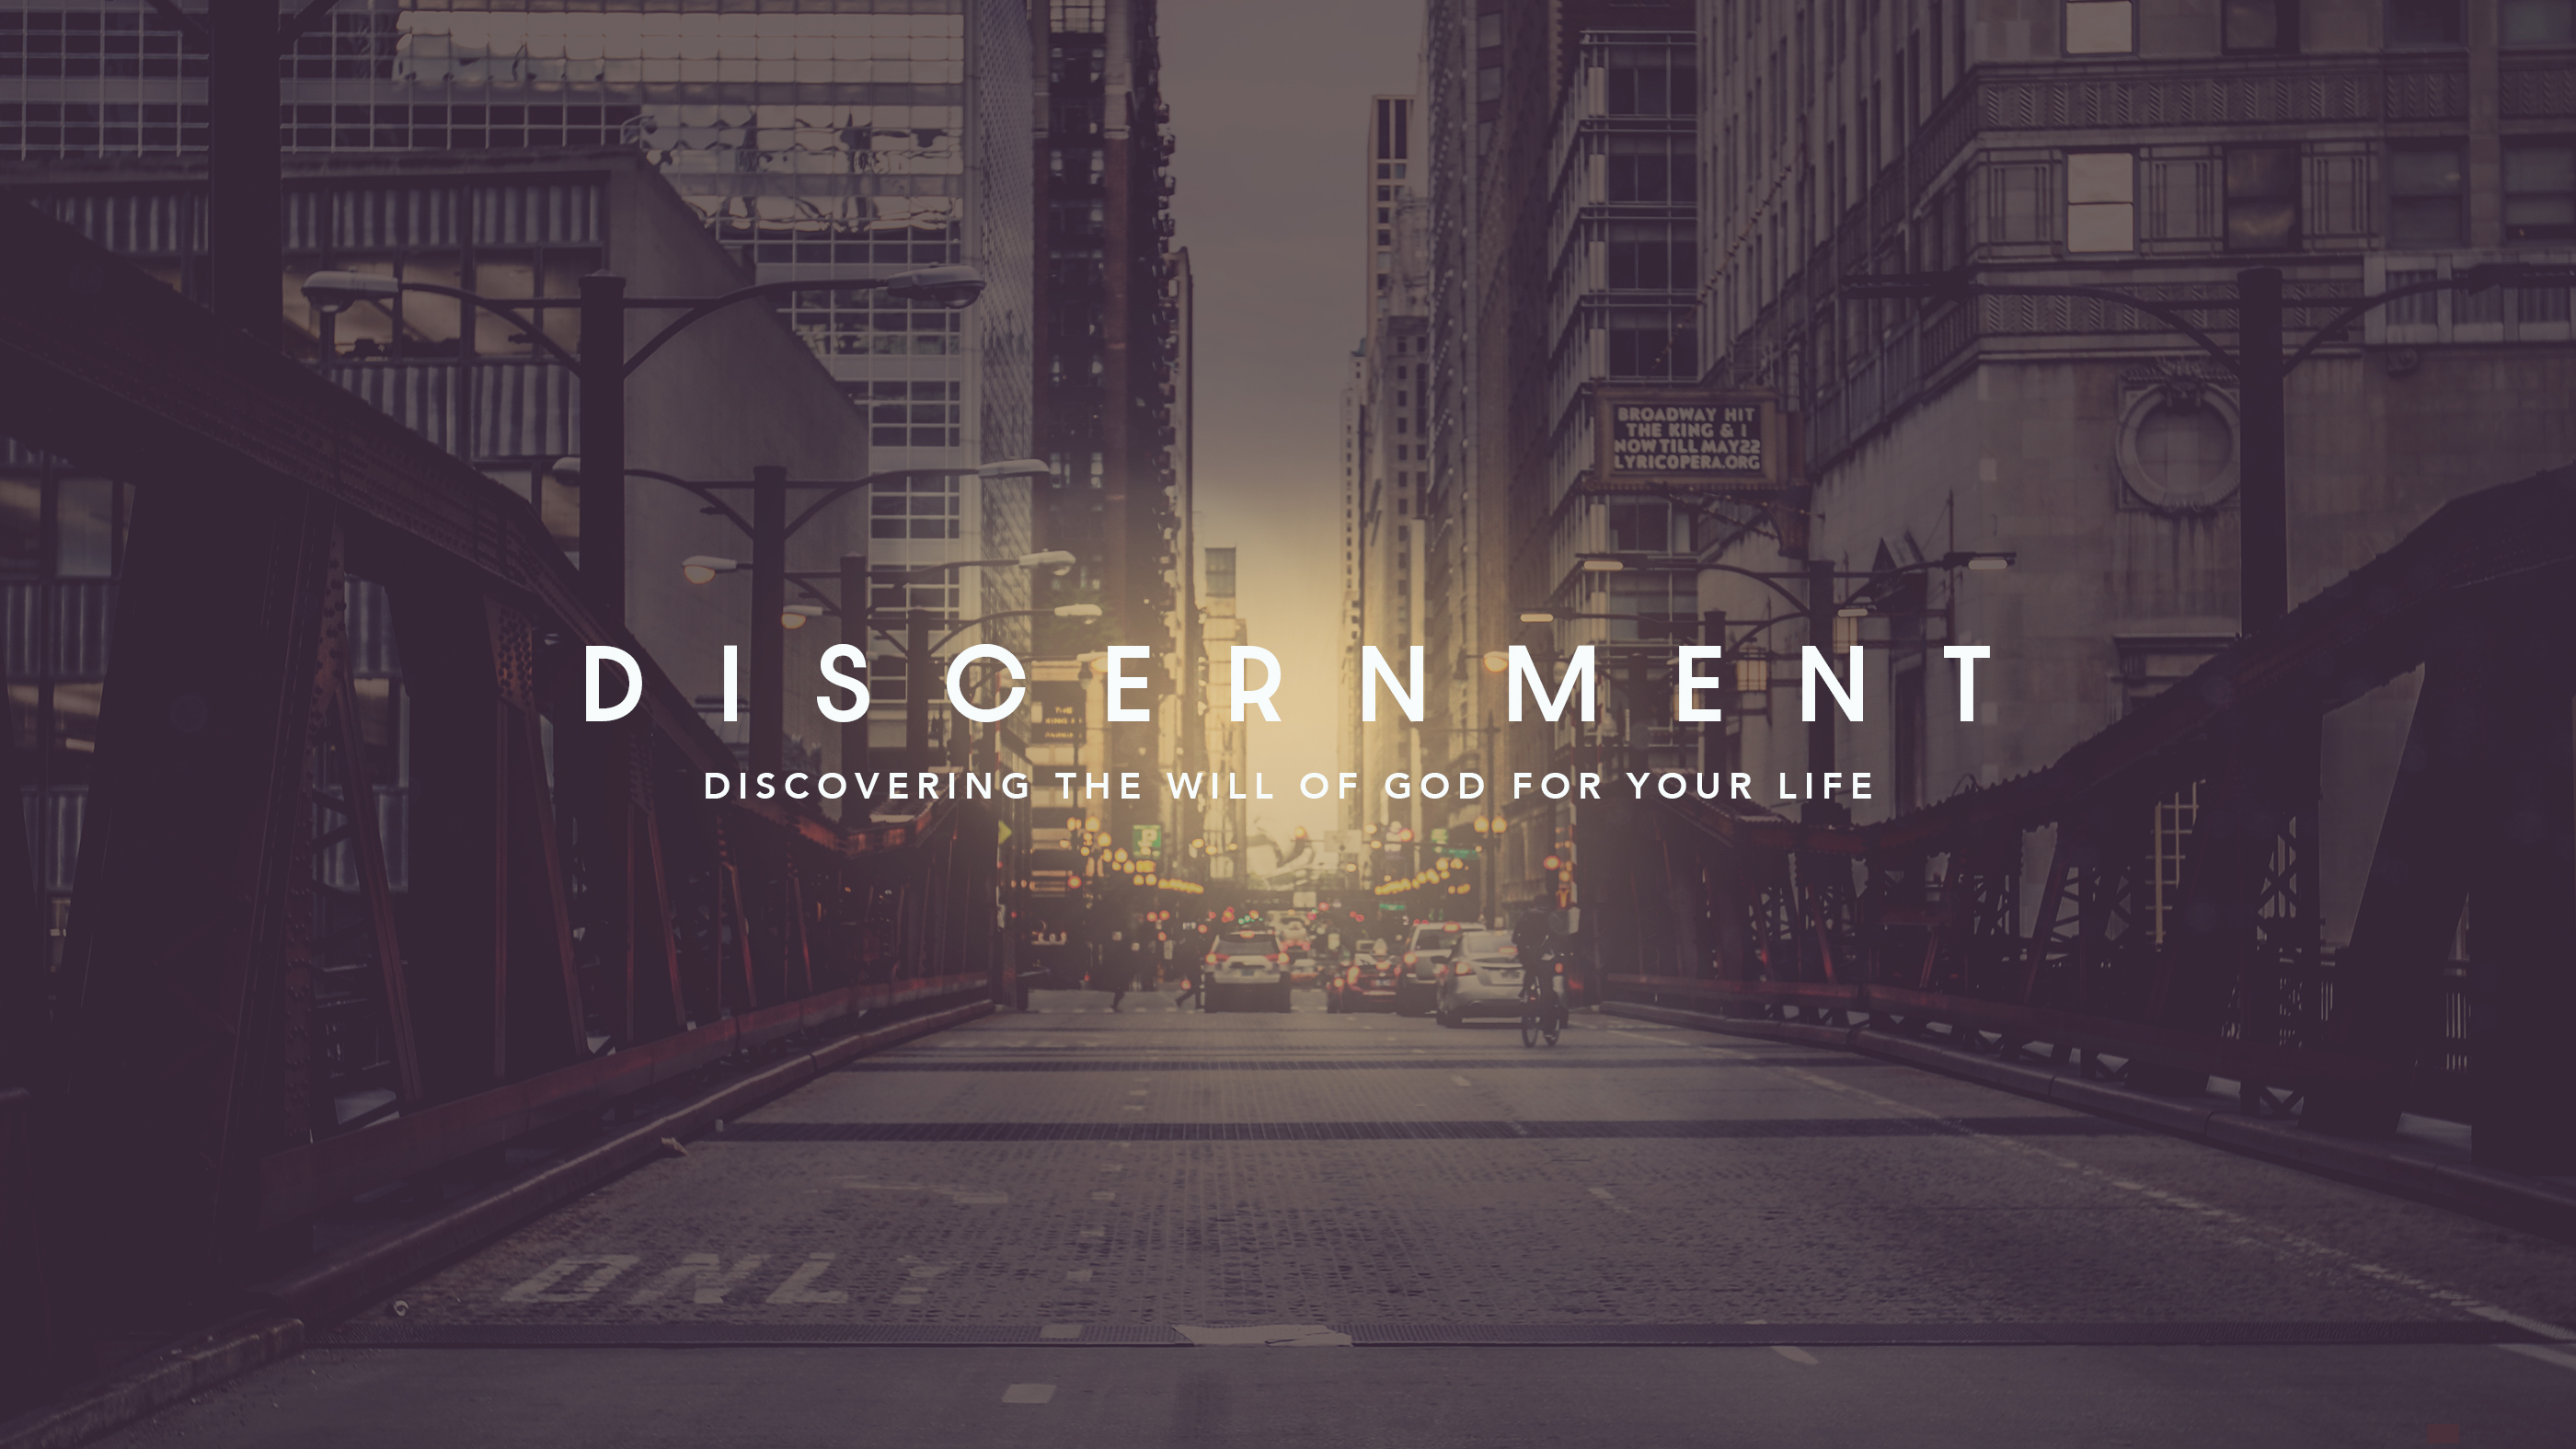 Discernment Workshop Image